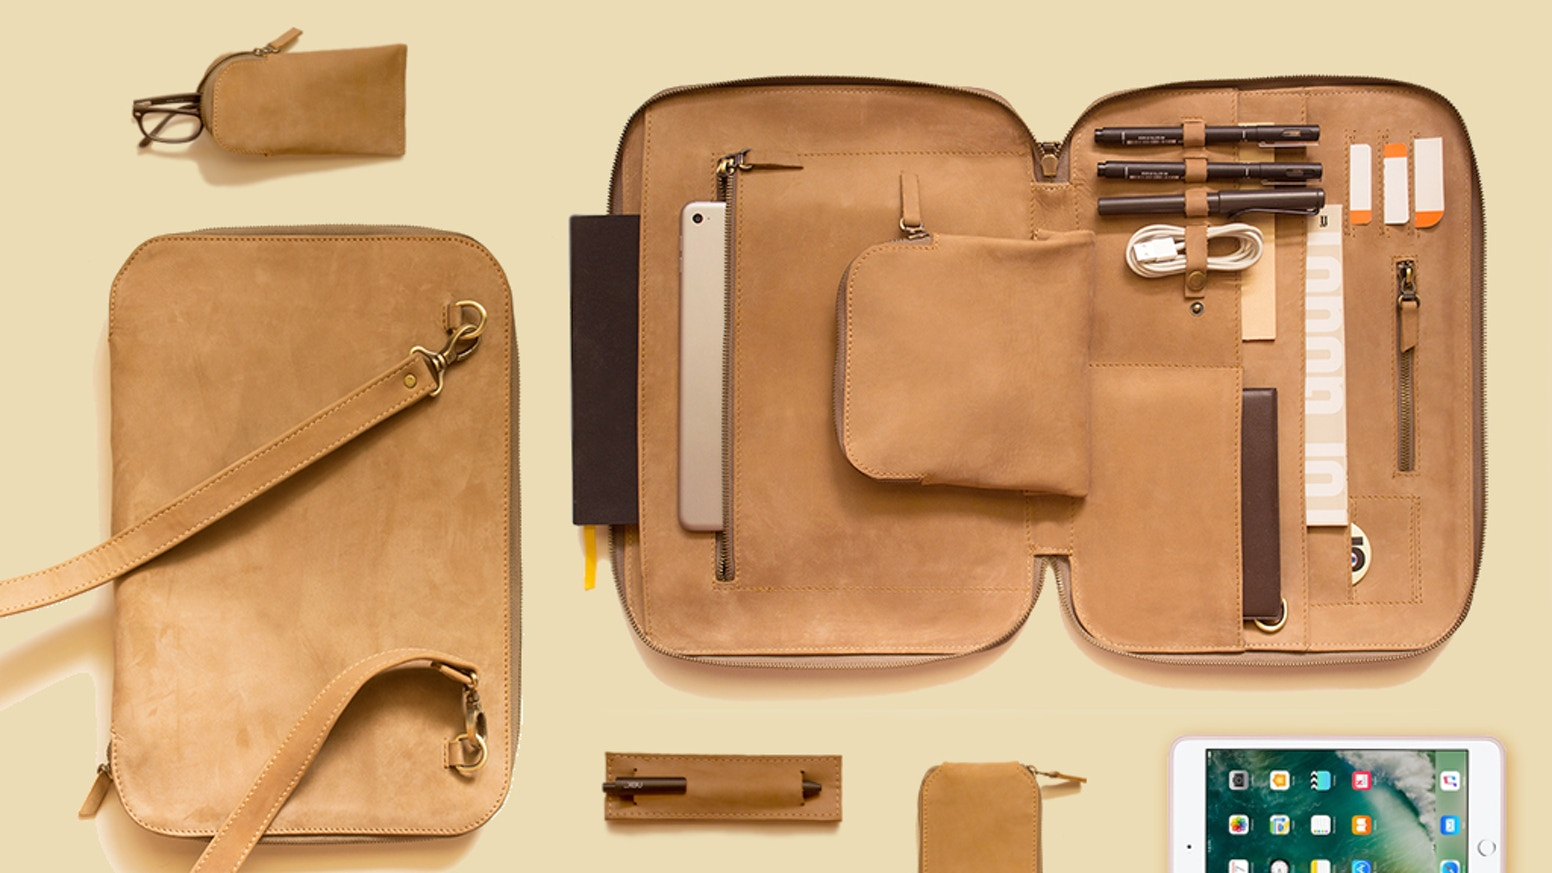 Blackbull Bags Are Luxury And Everyday Use That Made From Italian Natural Leather You